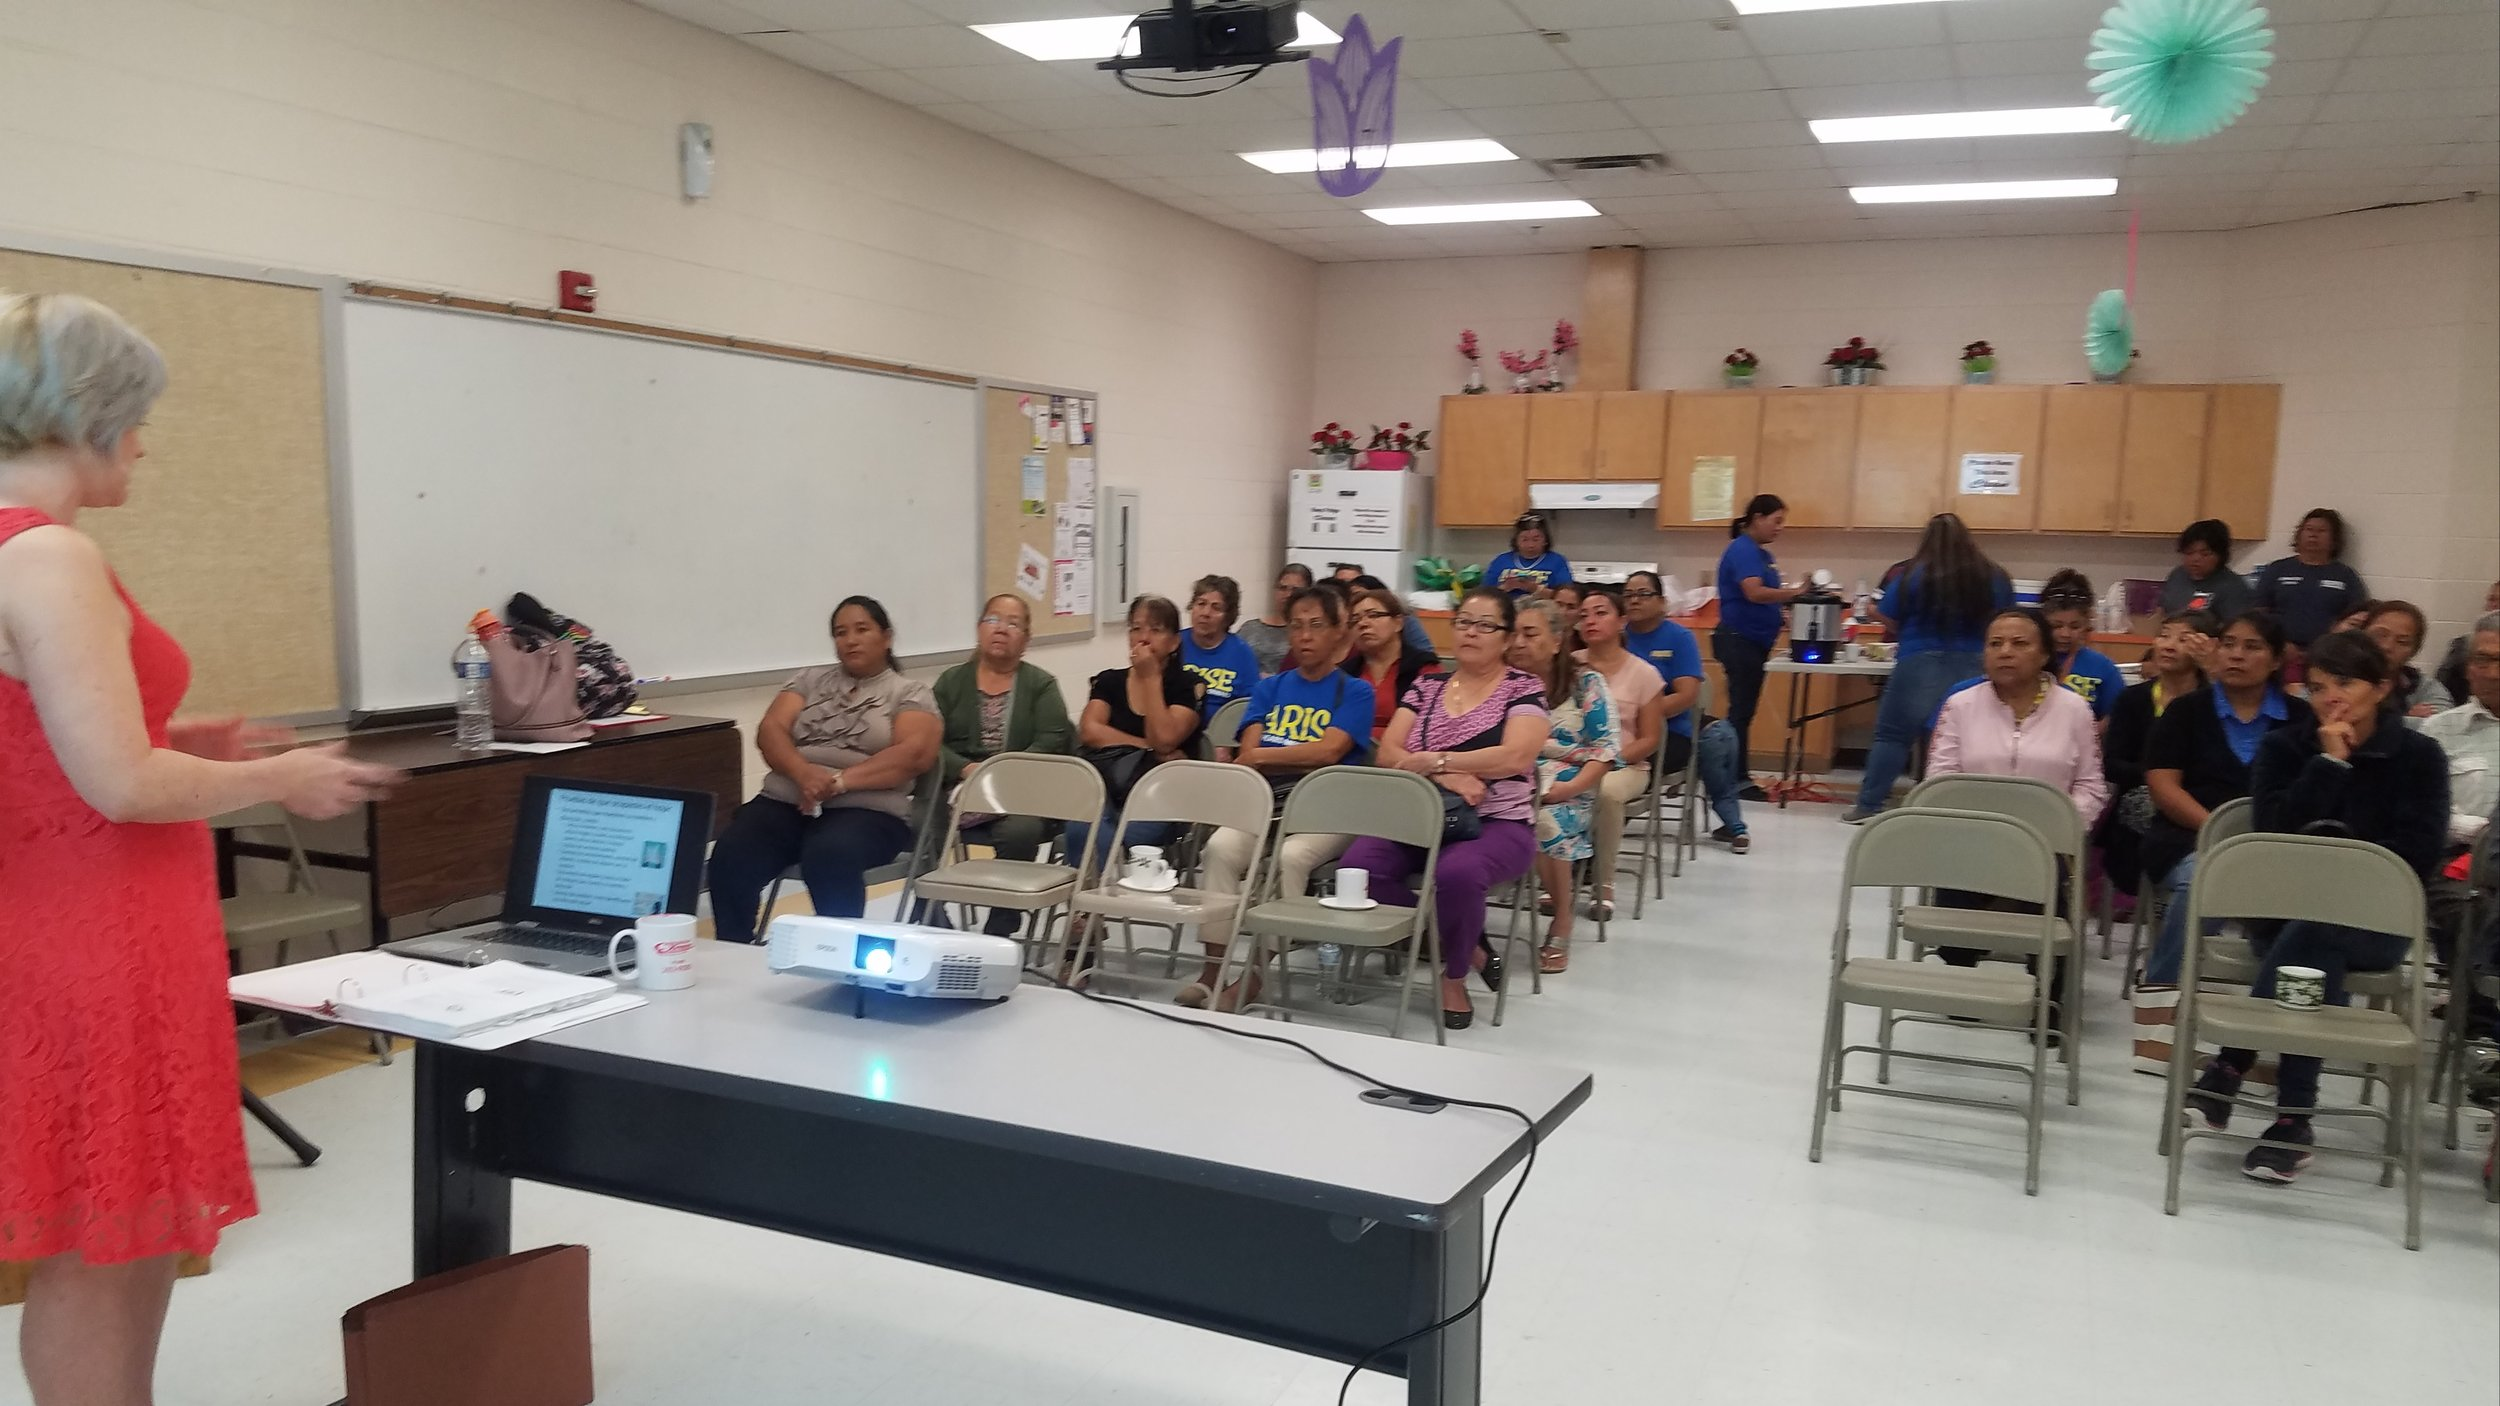 TRLA's Linley Boone-Almaguer provides disaster preparedness training to members of the ARISE community group.